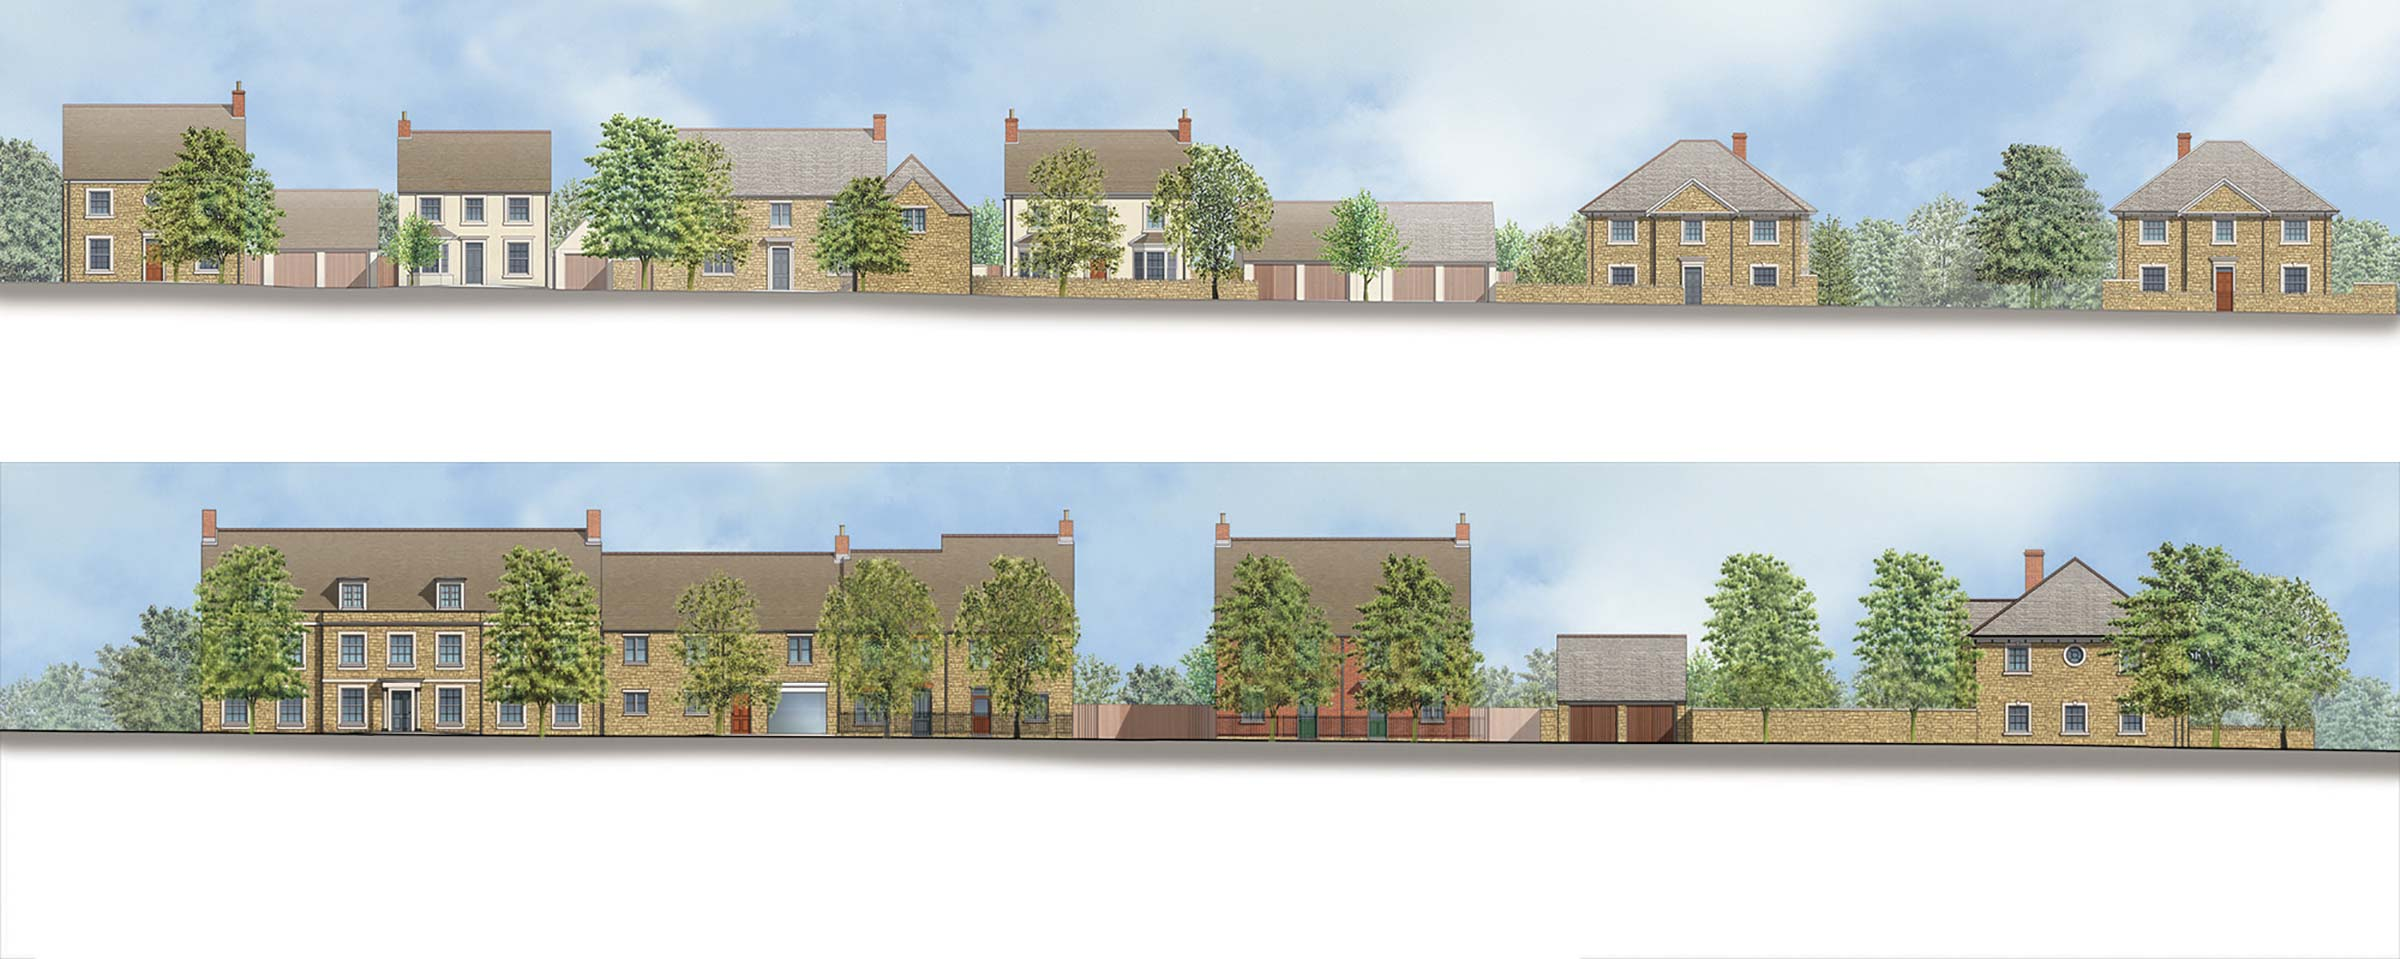 Urban extension to Woodstock, West Oxfordshire